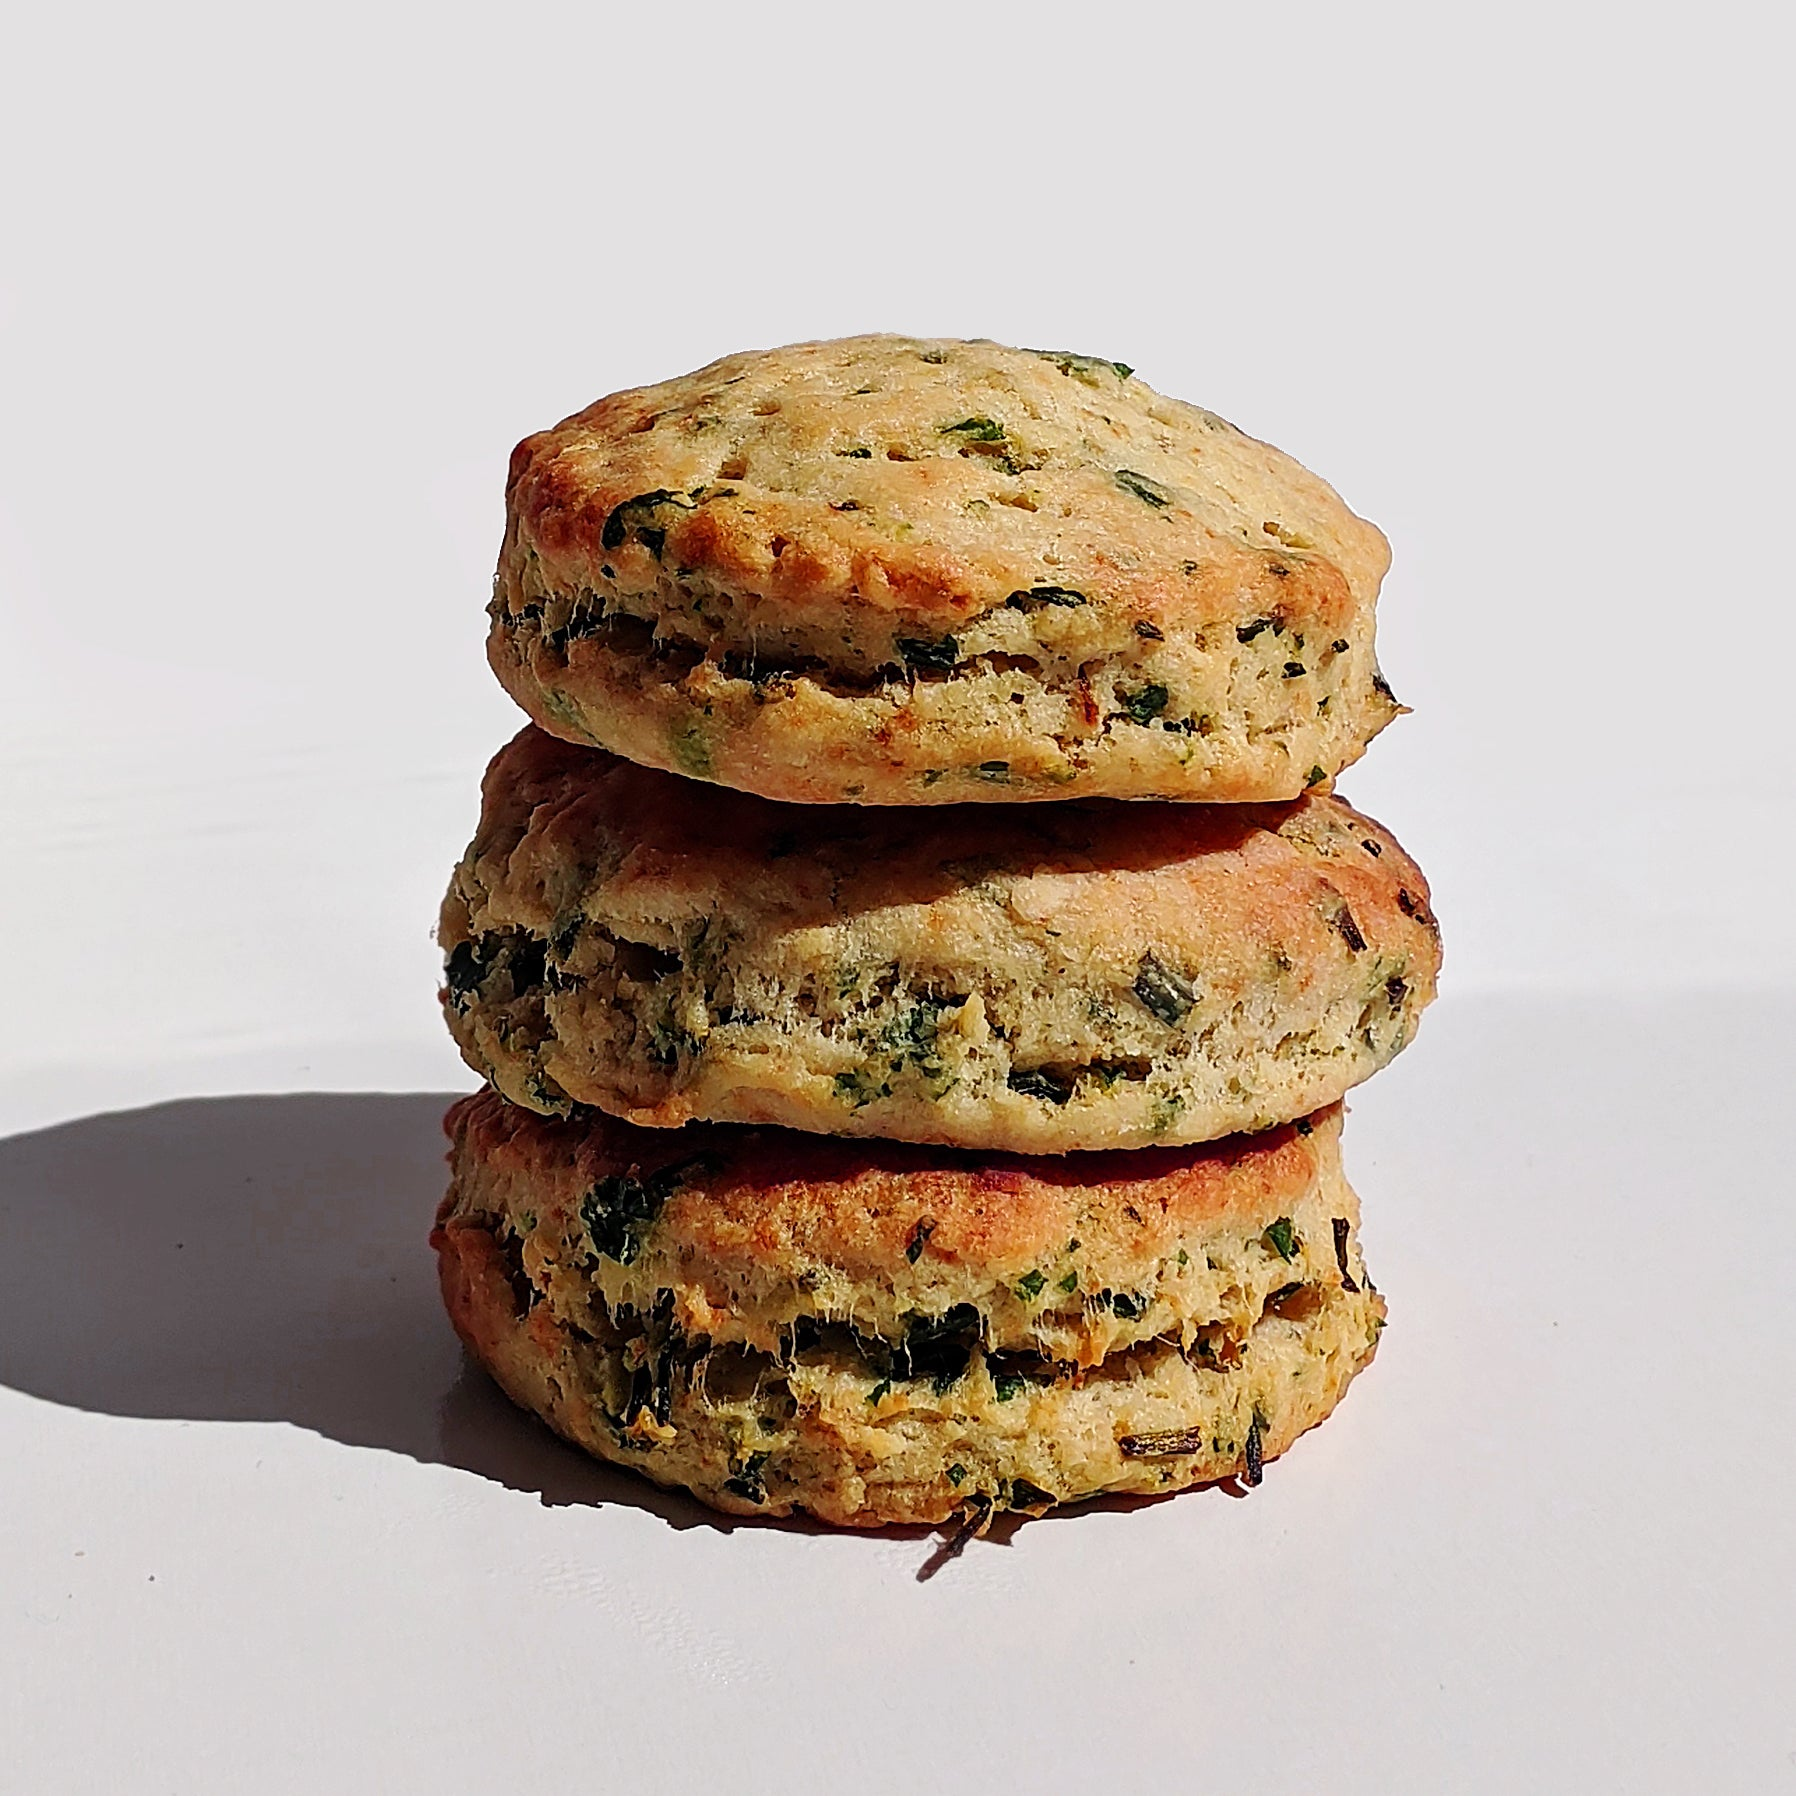 Sour Cream and Chives Biscuits